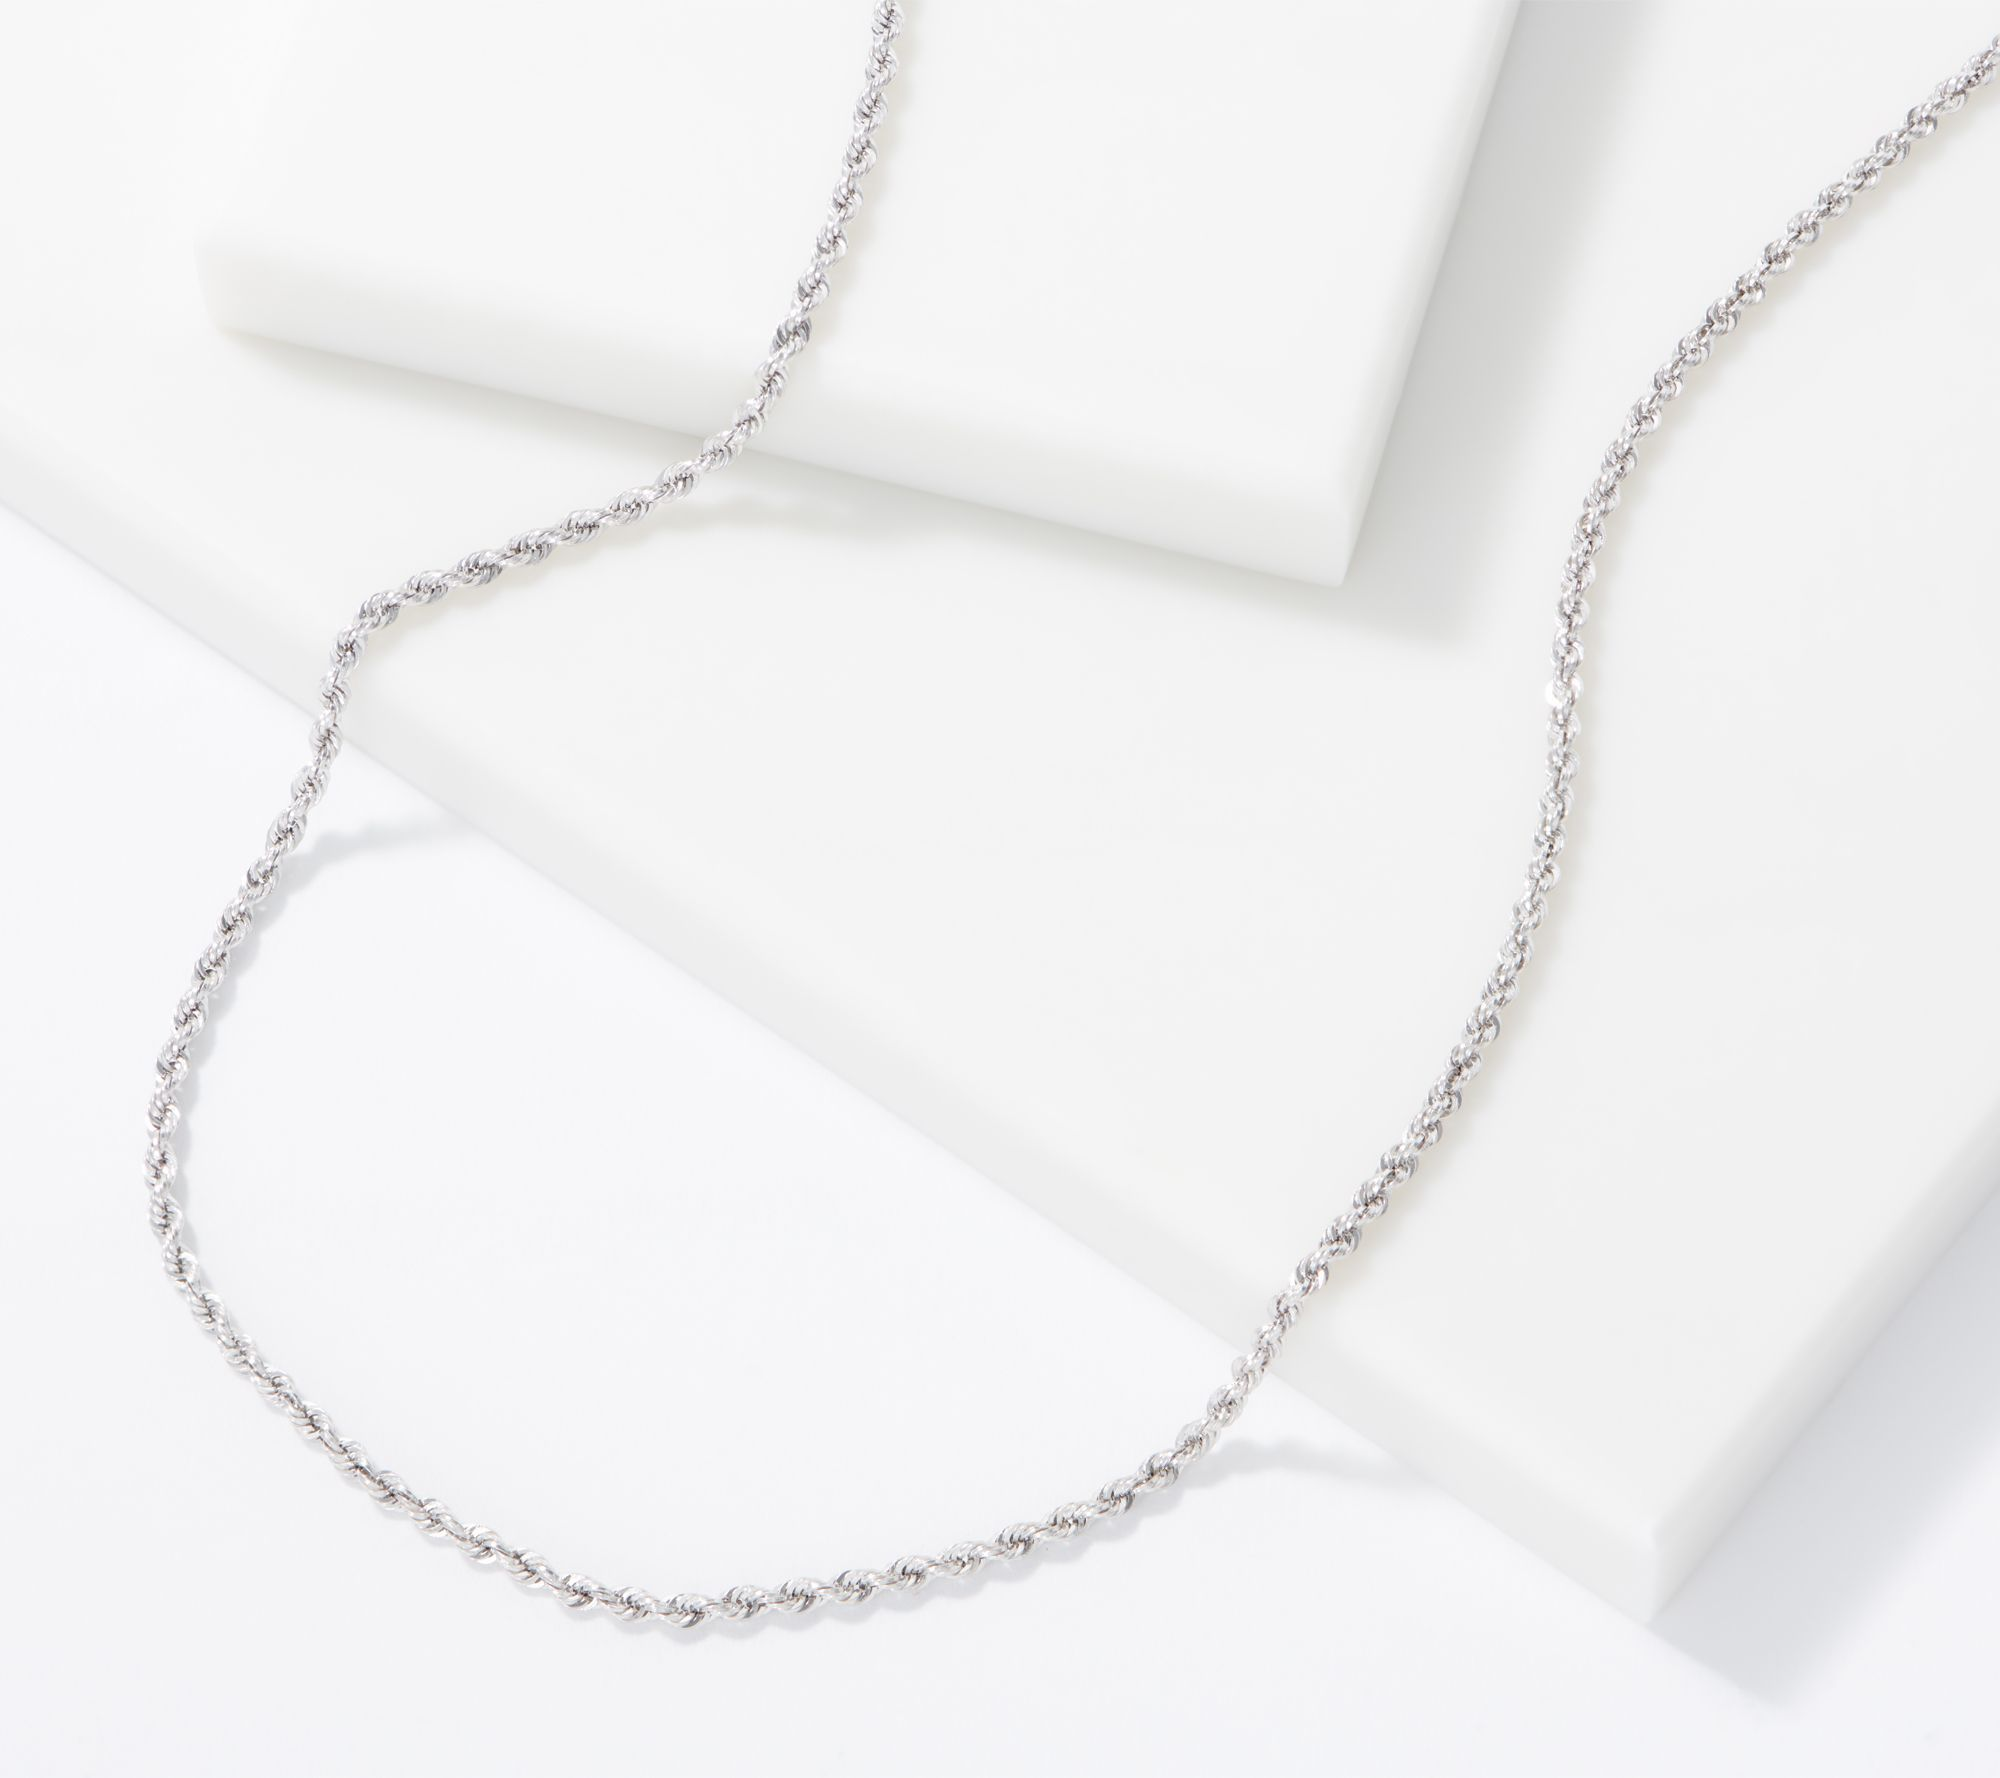 """Eterna Gold 16"""" Shimmer Rope Chain Necklace W/ Color 2.09g,14 K by The Eterna Gold® Collection"""